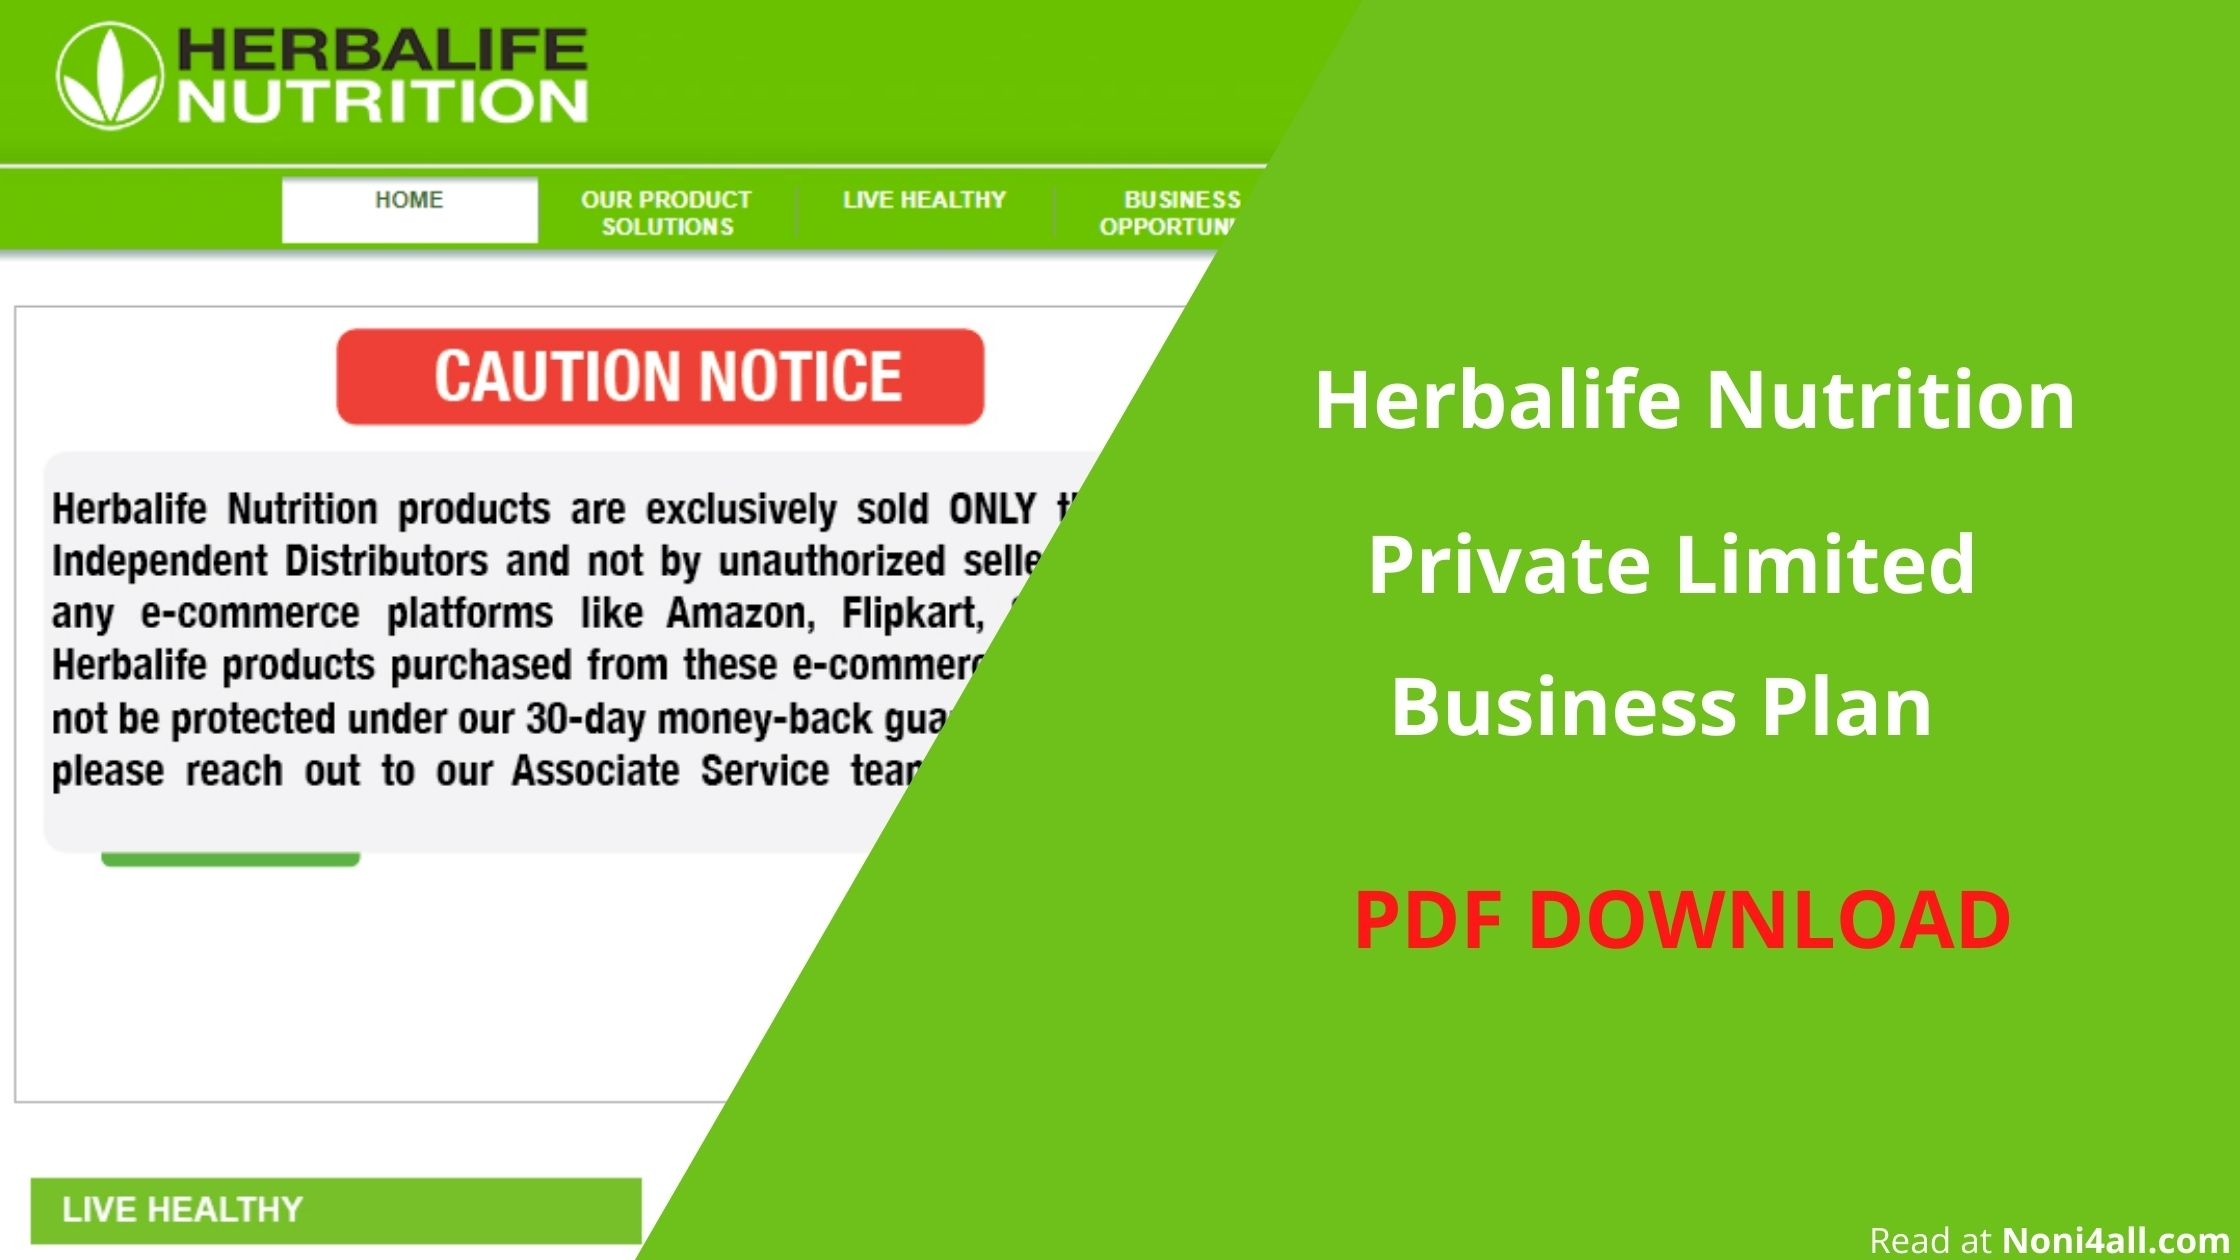 Herbalife Business Plan PDF